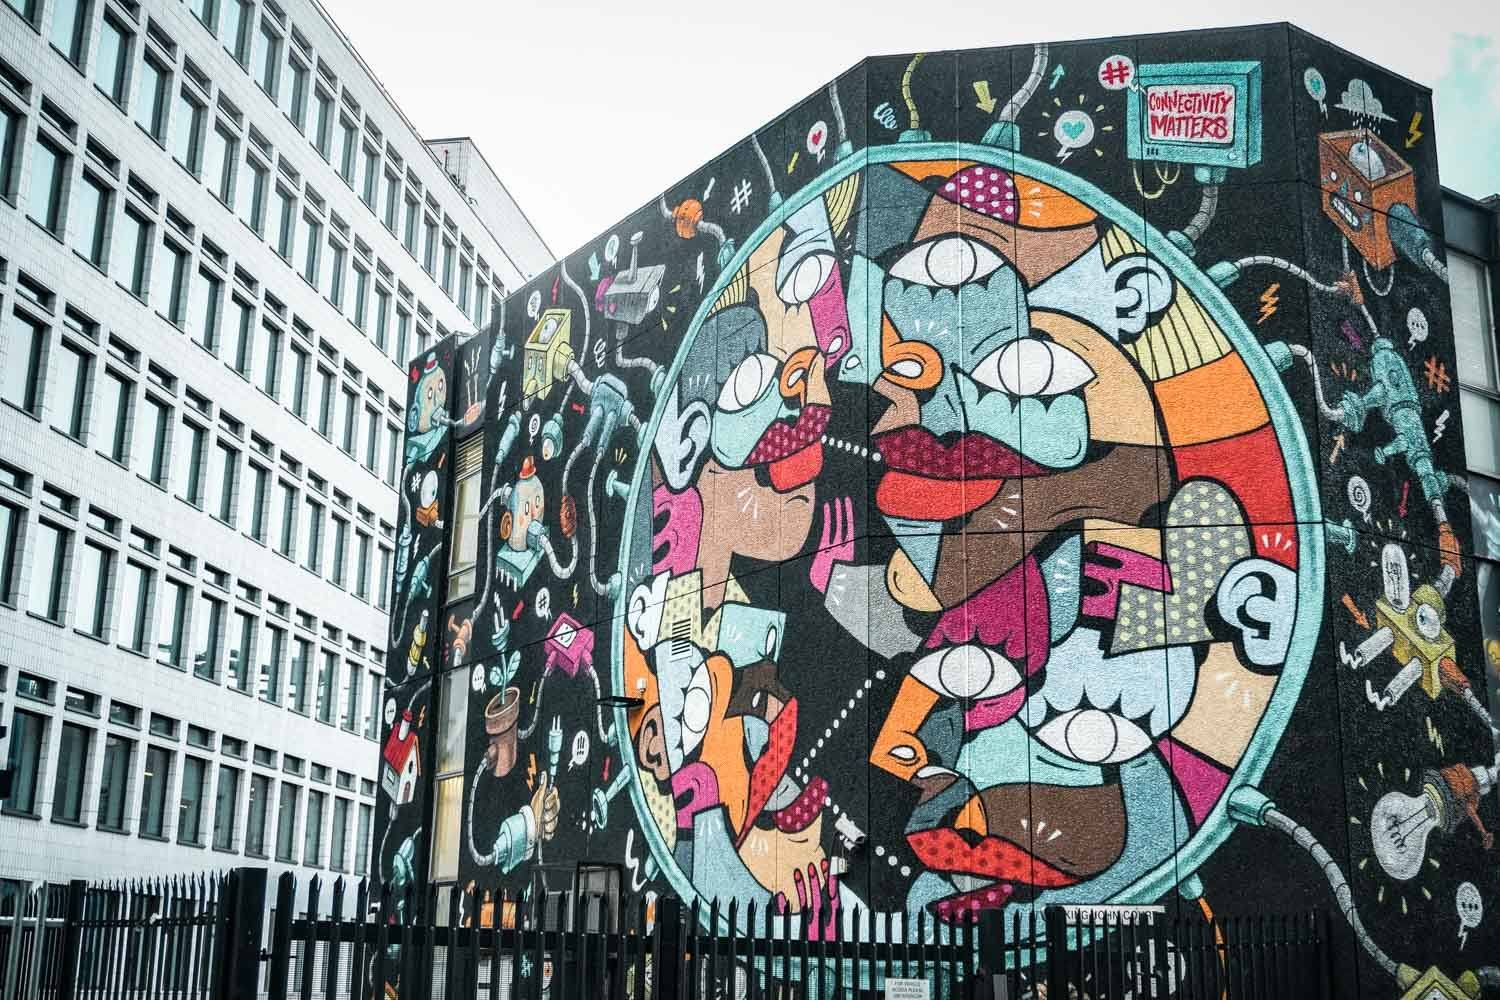 Shoreditch Street Art Map Shoreditch Street Art Guide   Self Guided Tour + Map – The